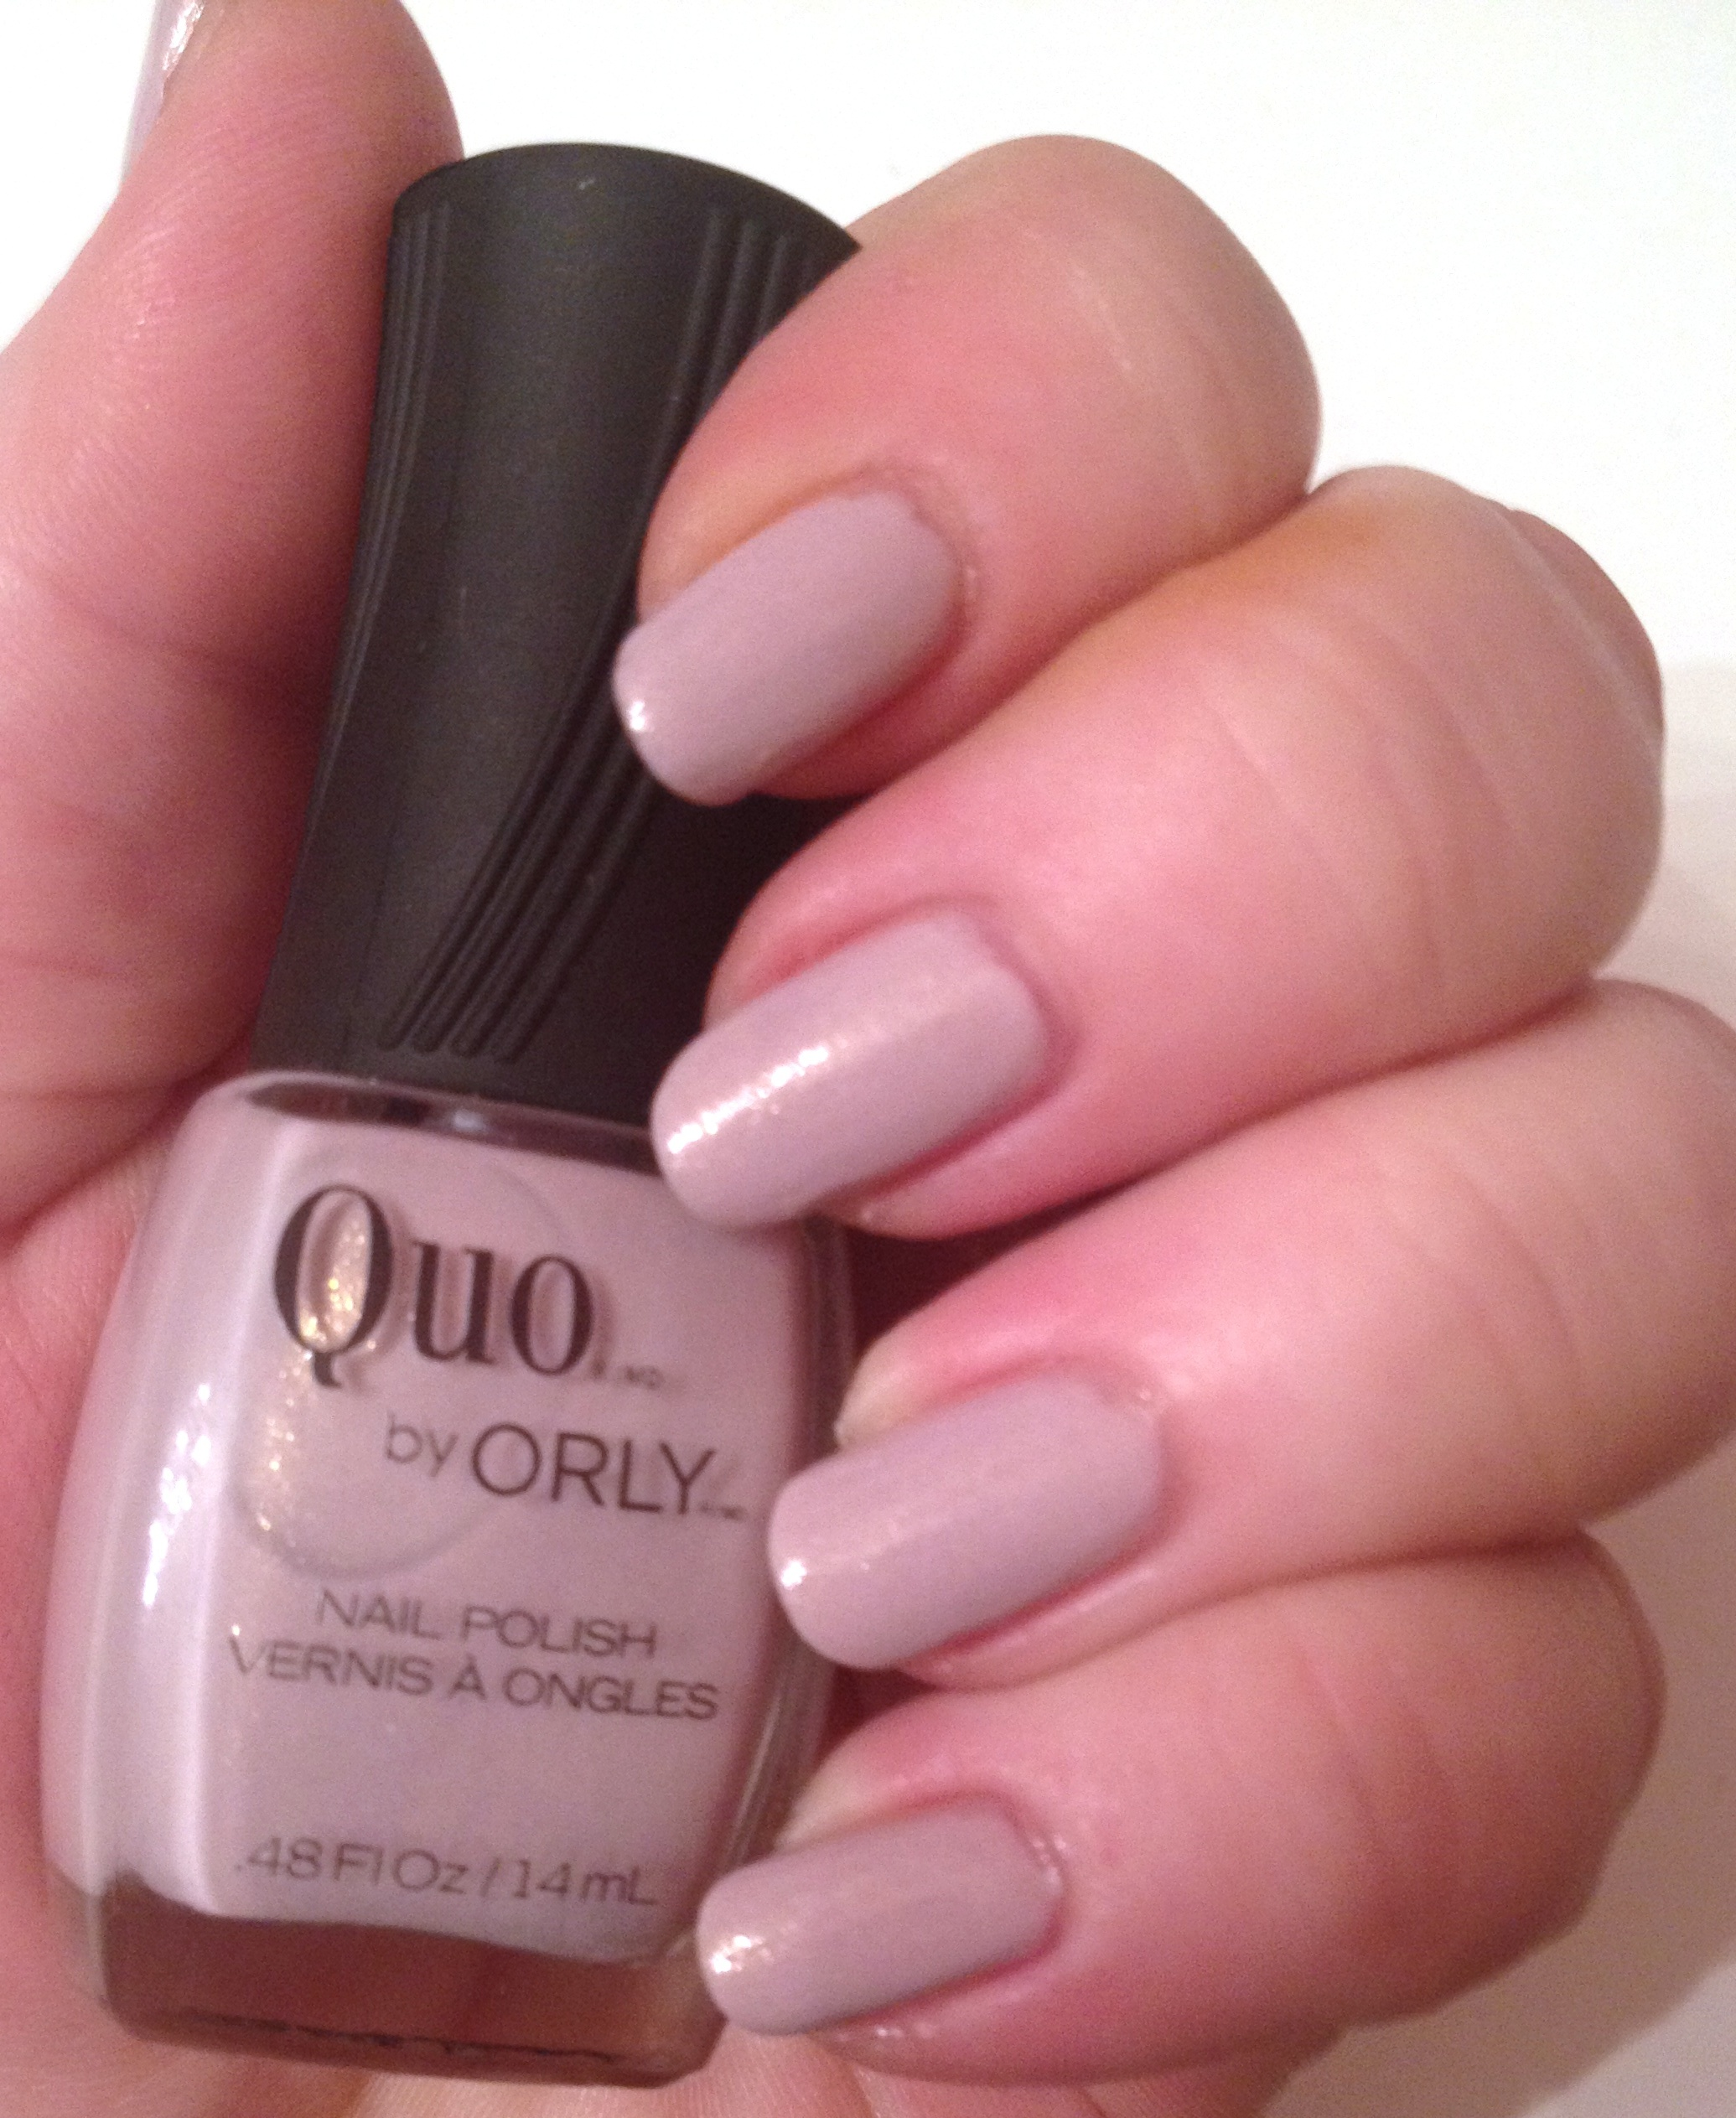 Quo by orly – Makeup Most Wanted